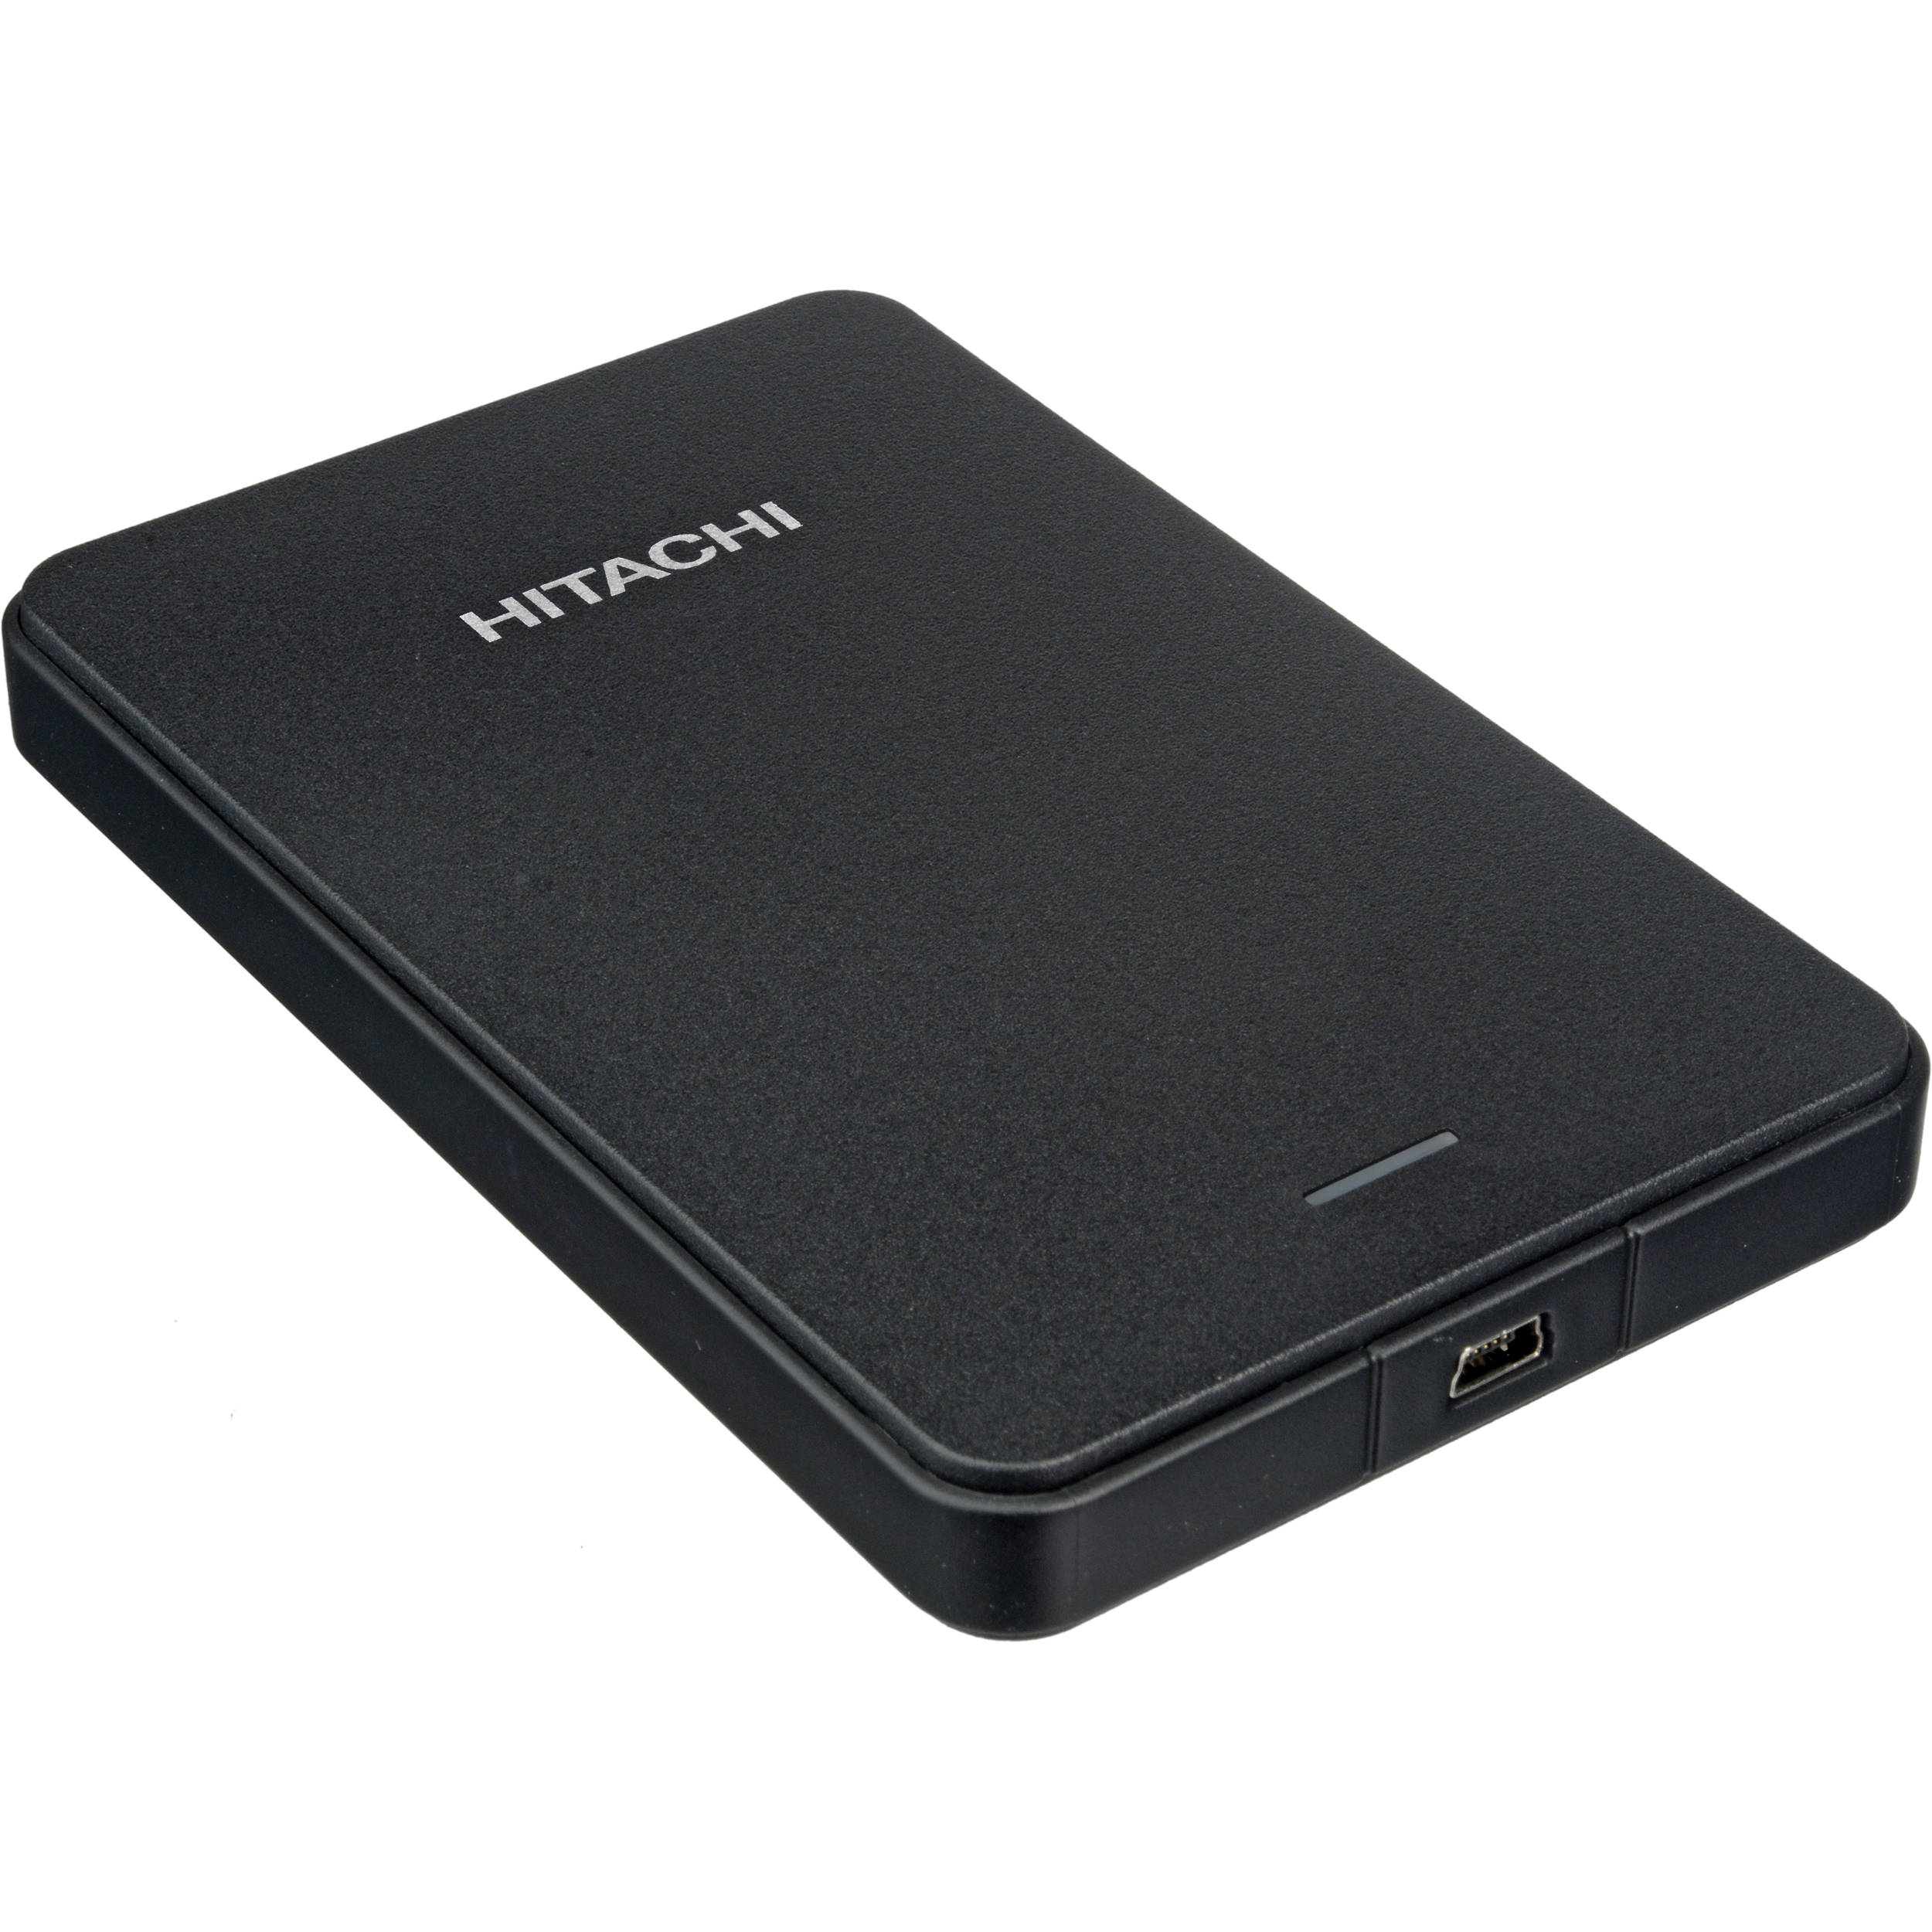 Hitachi external hard disk driver download.